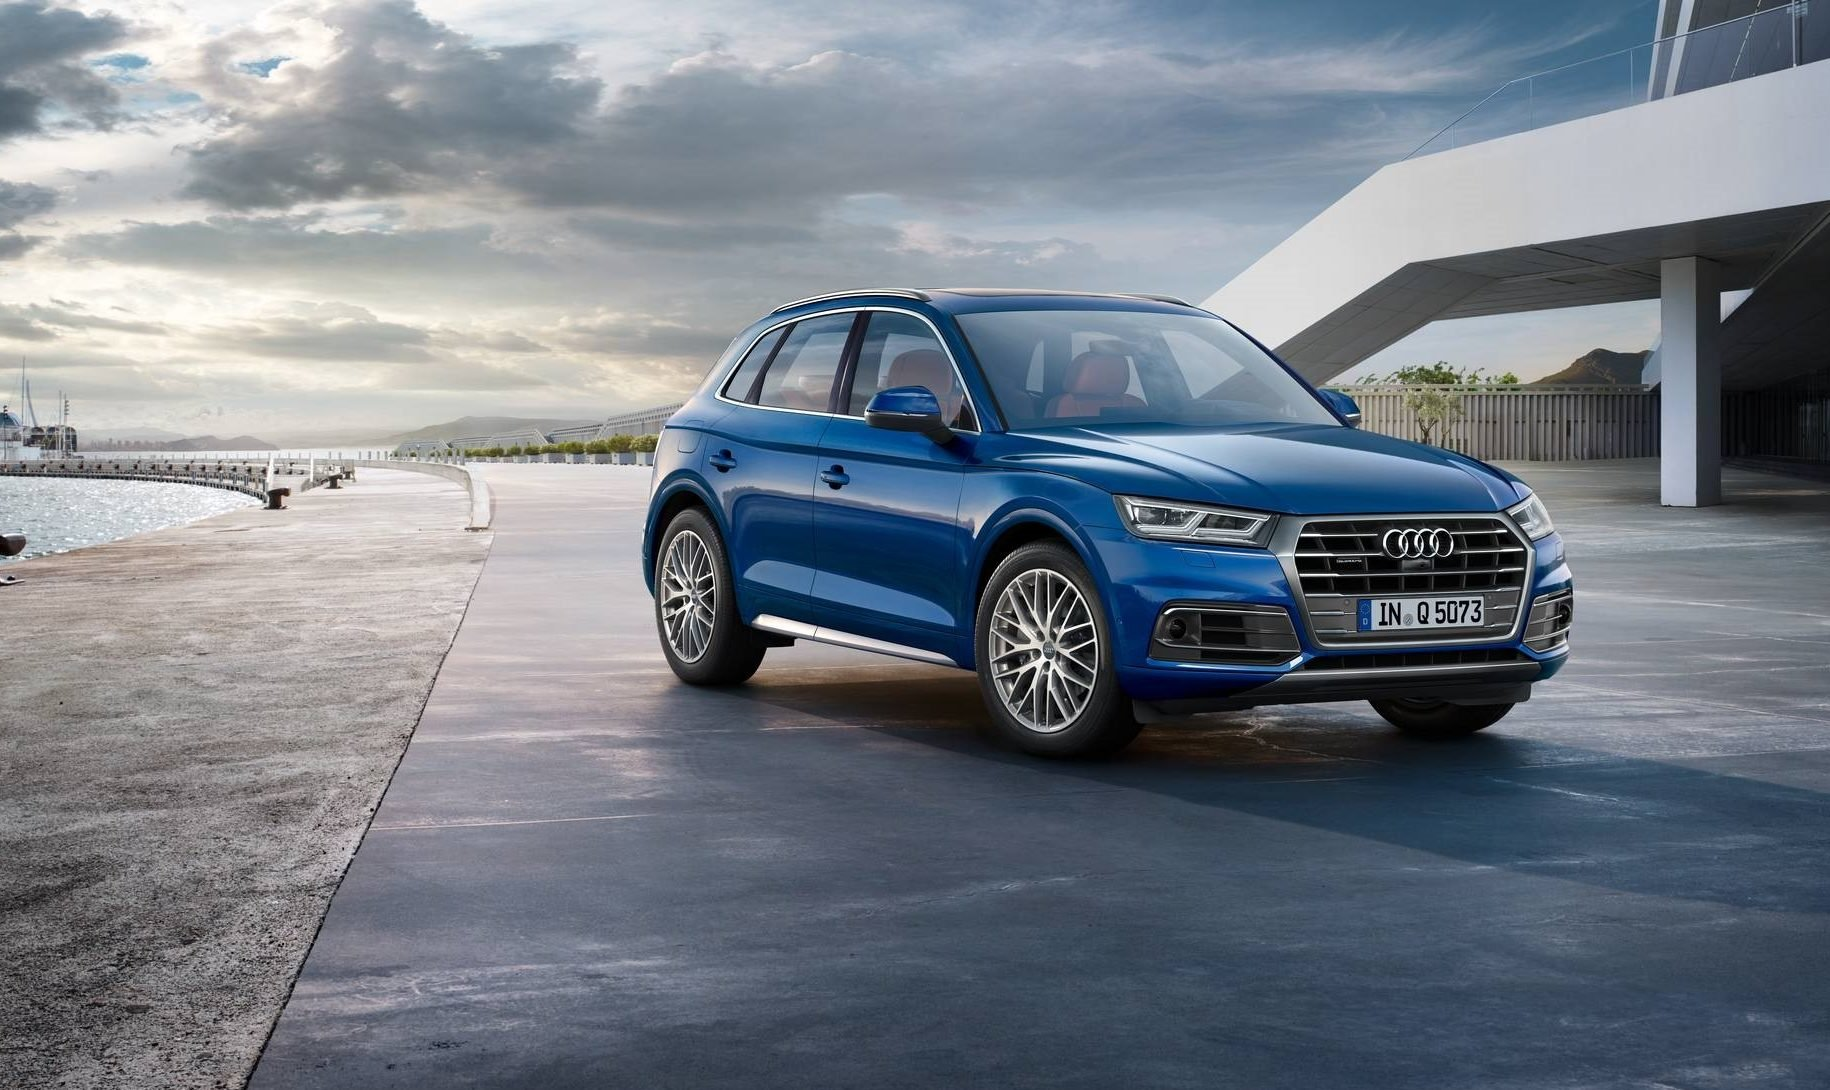 avis incorpora en exclusiva el nuevo audi q5 a su flota espa ola traveladvisors. Black Bedroom Furniture Sets. Home Design Ideas